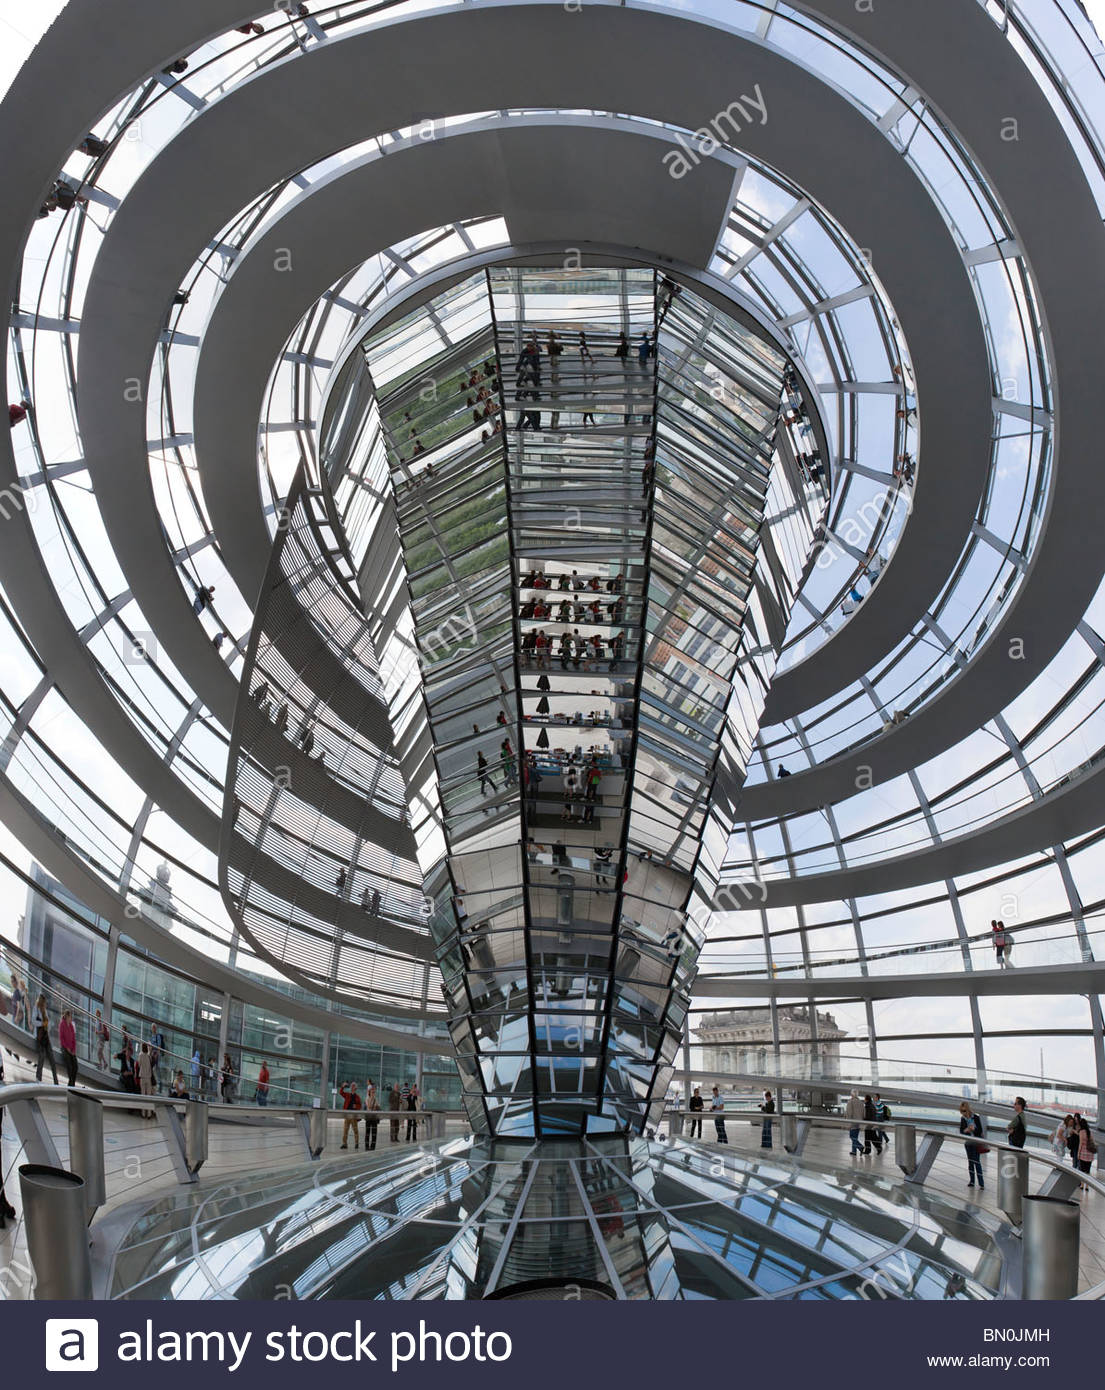 interior of the dome on top of the reichstag in berlin. Black Bedroom Furniture Sets. Home Design Ideas